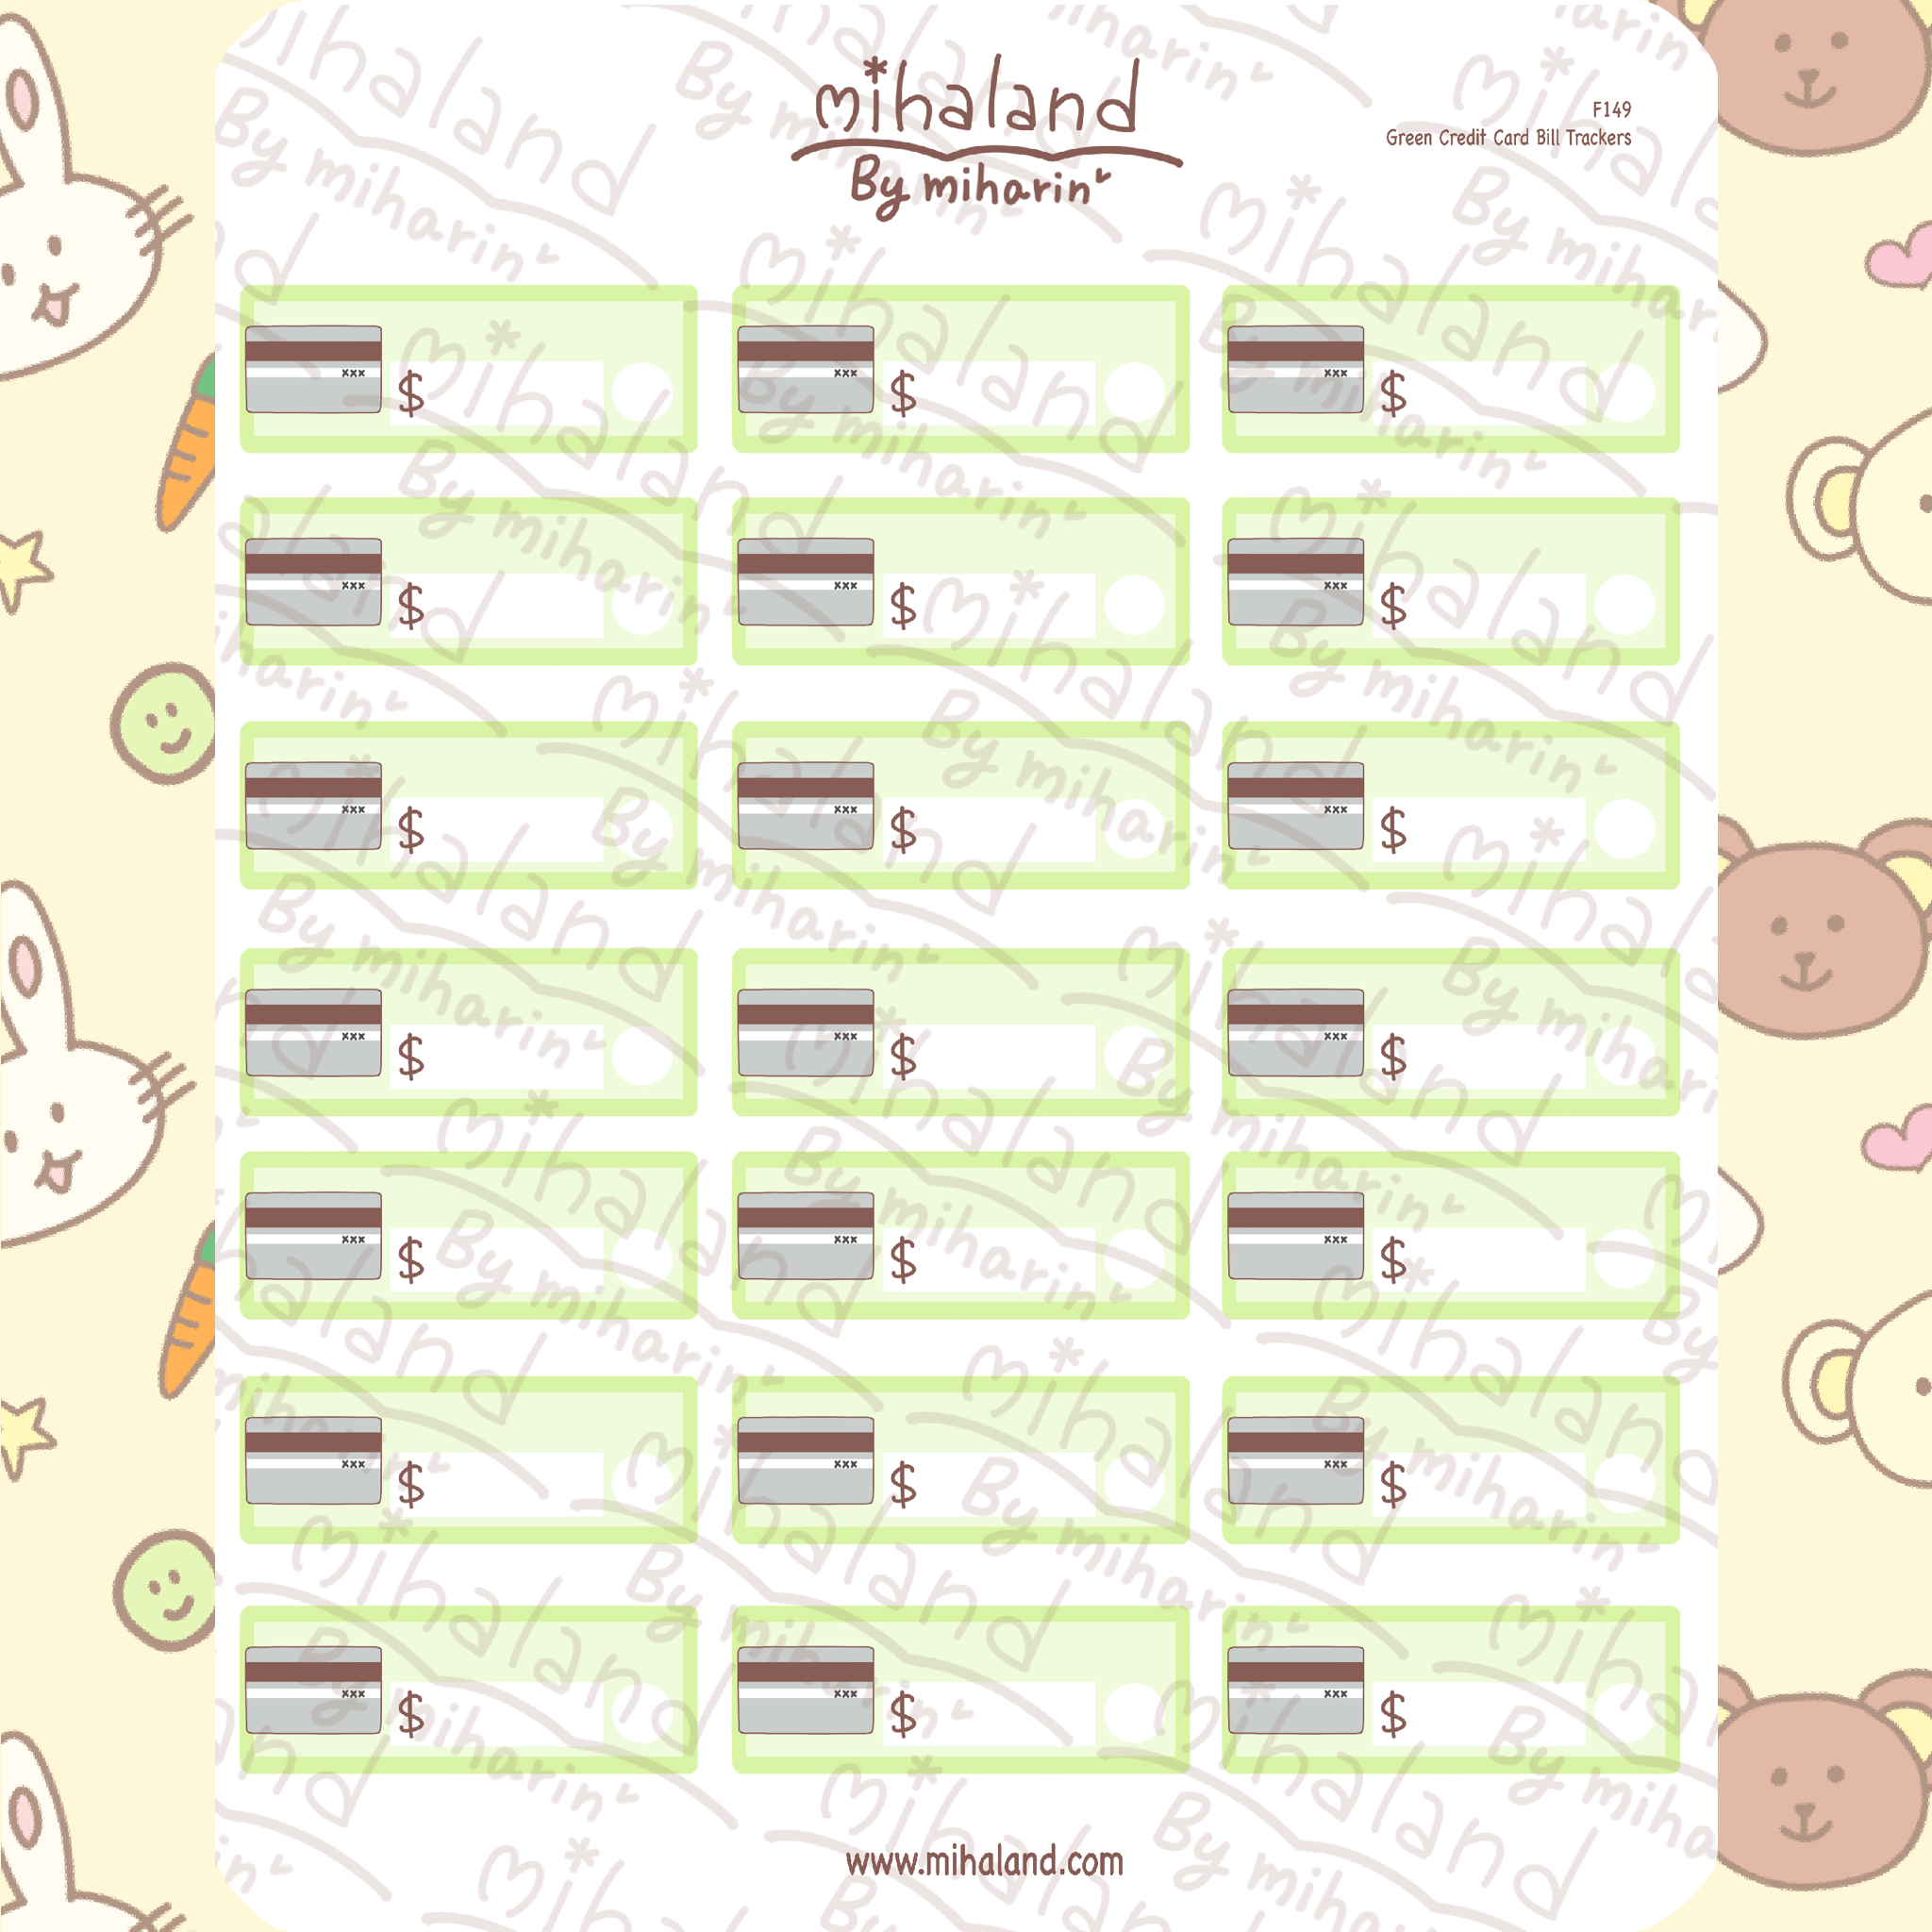 Green Credit Card Bill Trackers Planner Stickers (F149)